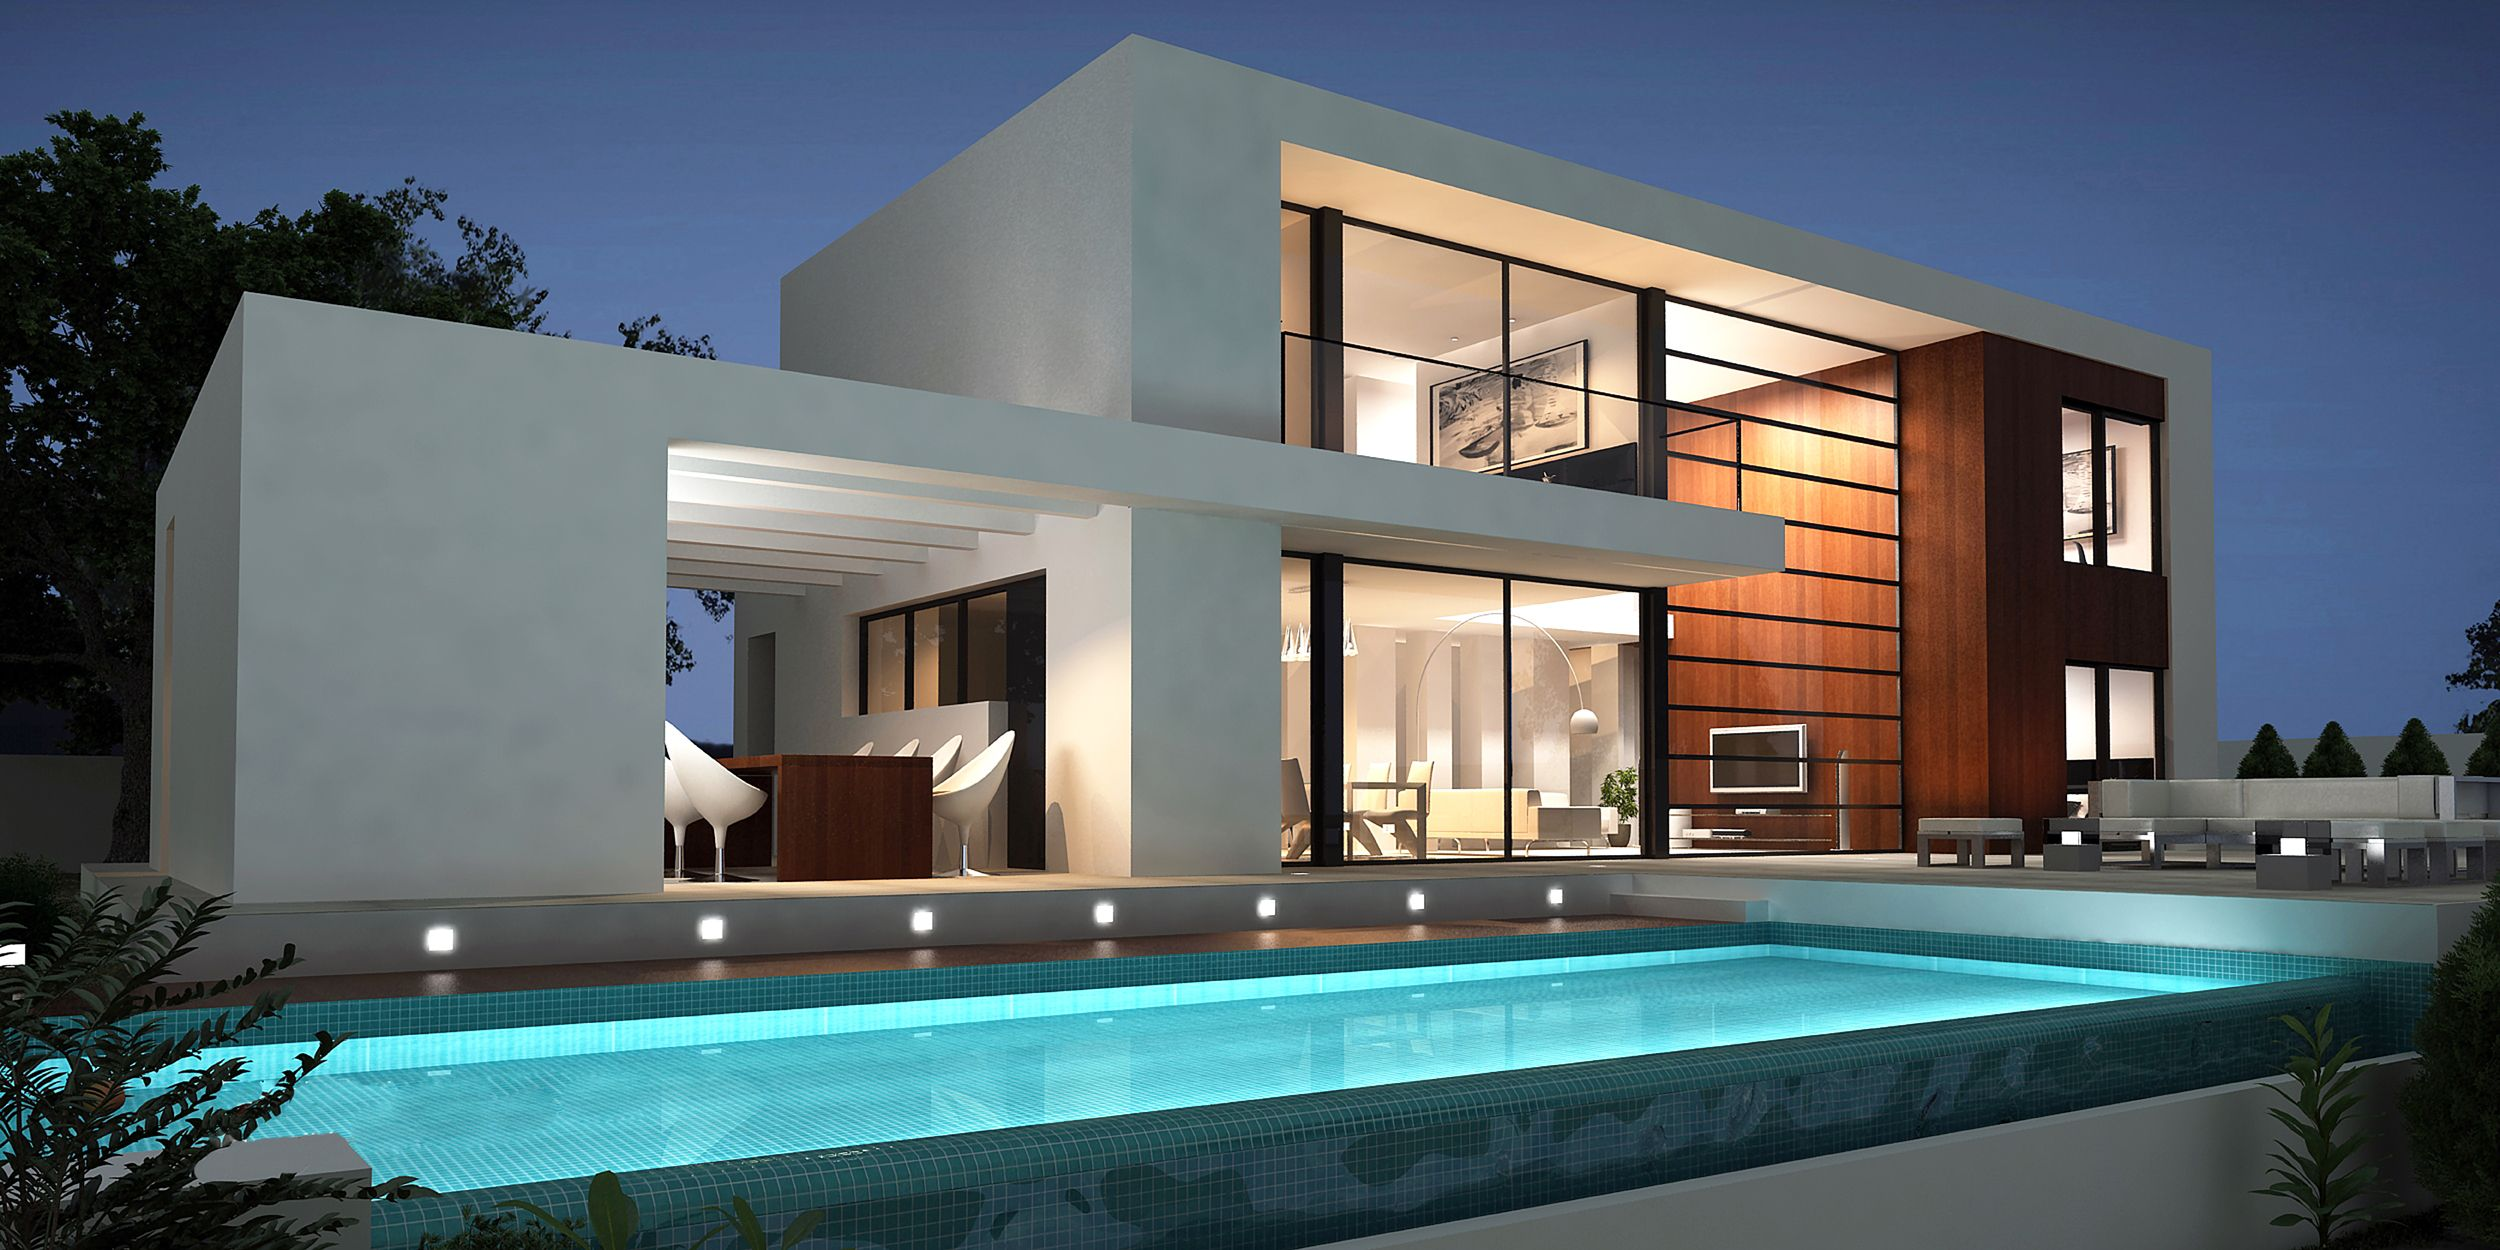 Astounding modern villa design with exotic backyard pool for Villa design ideas